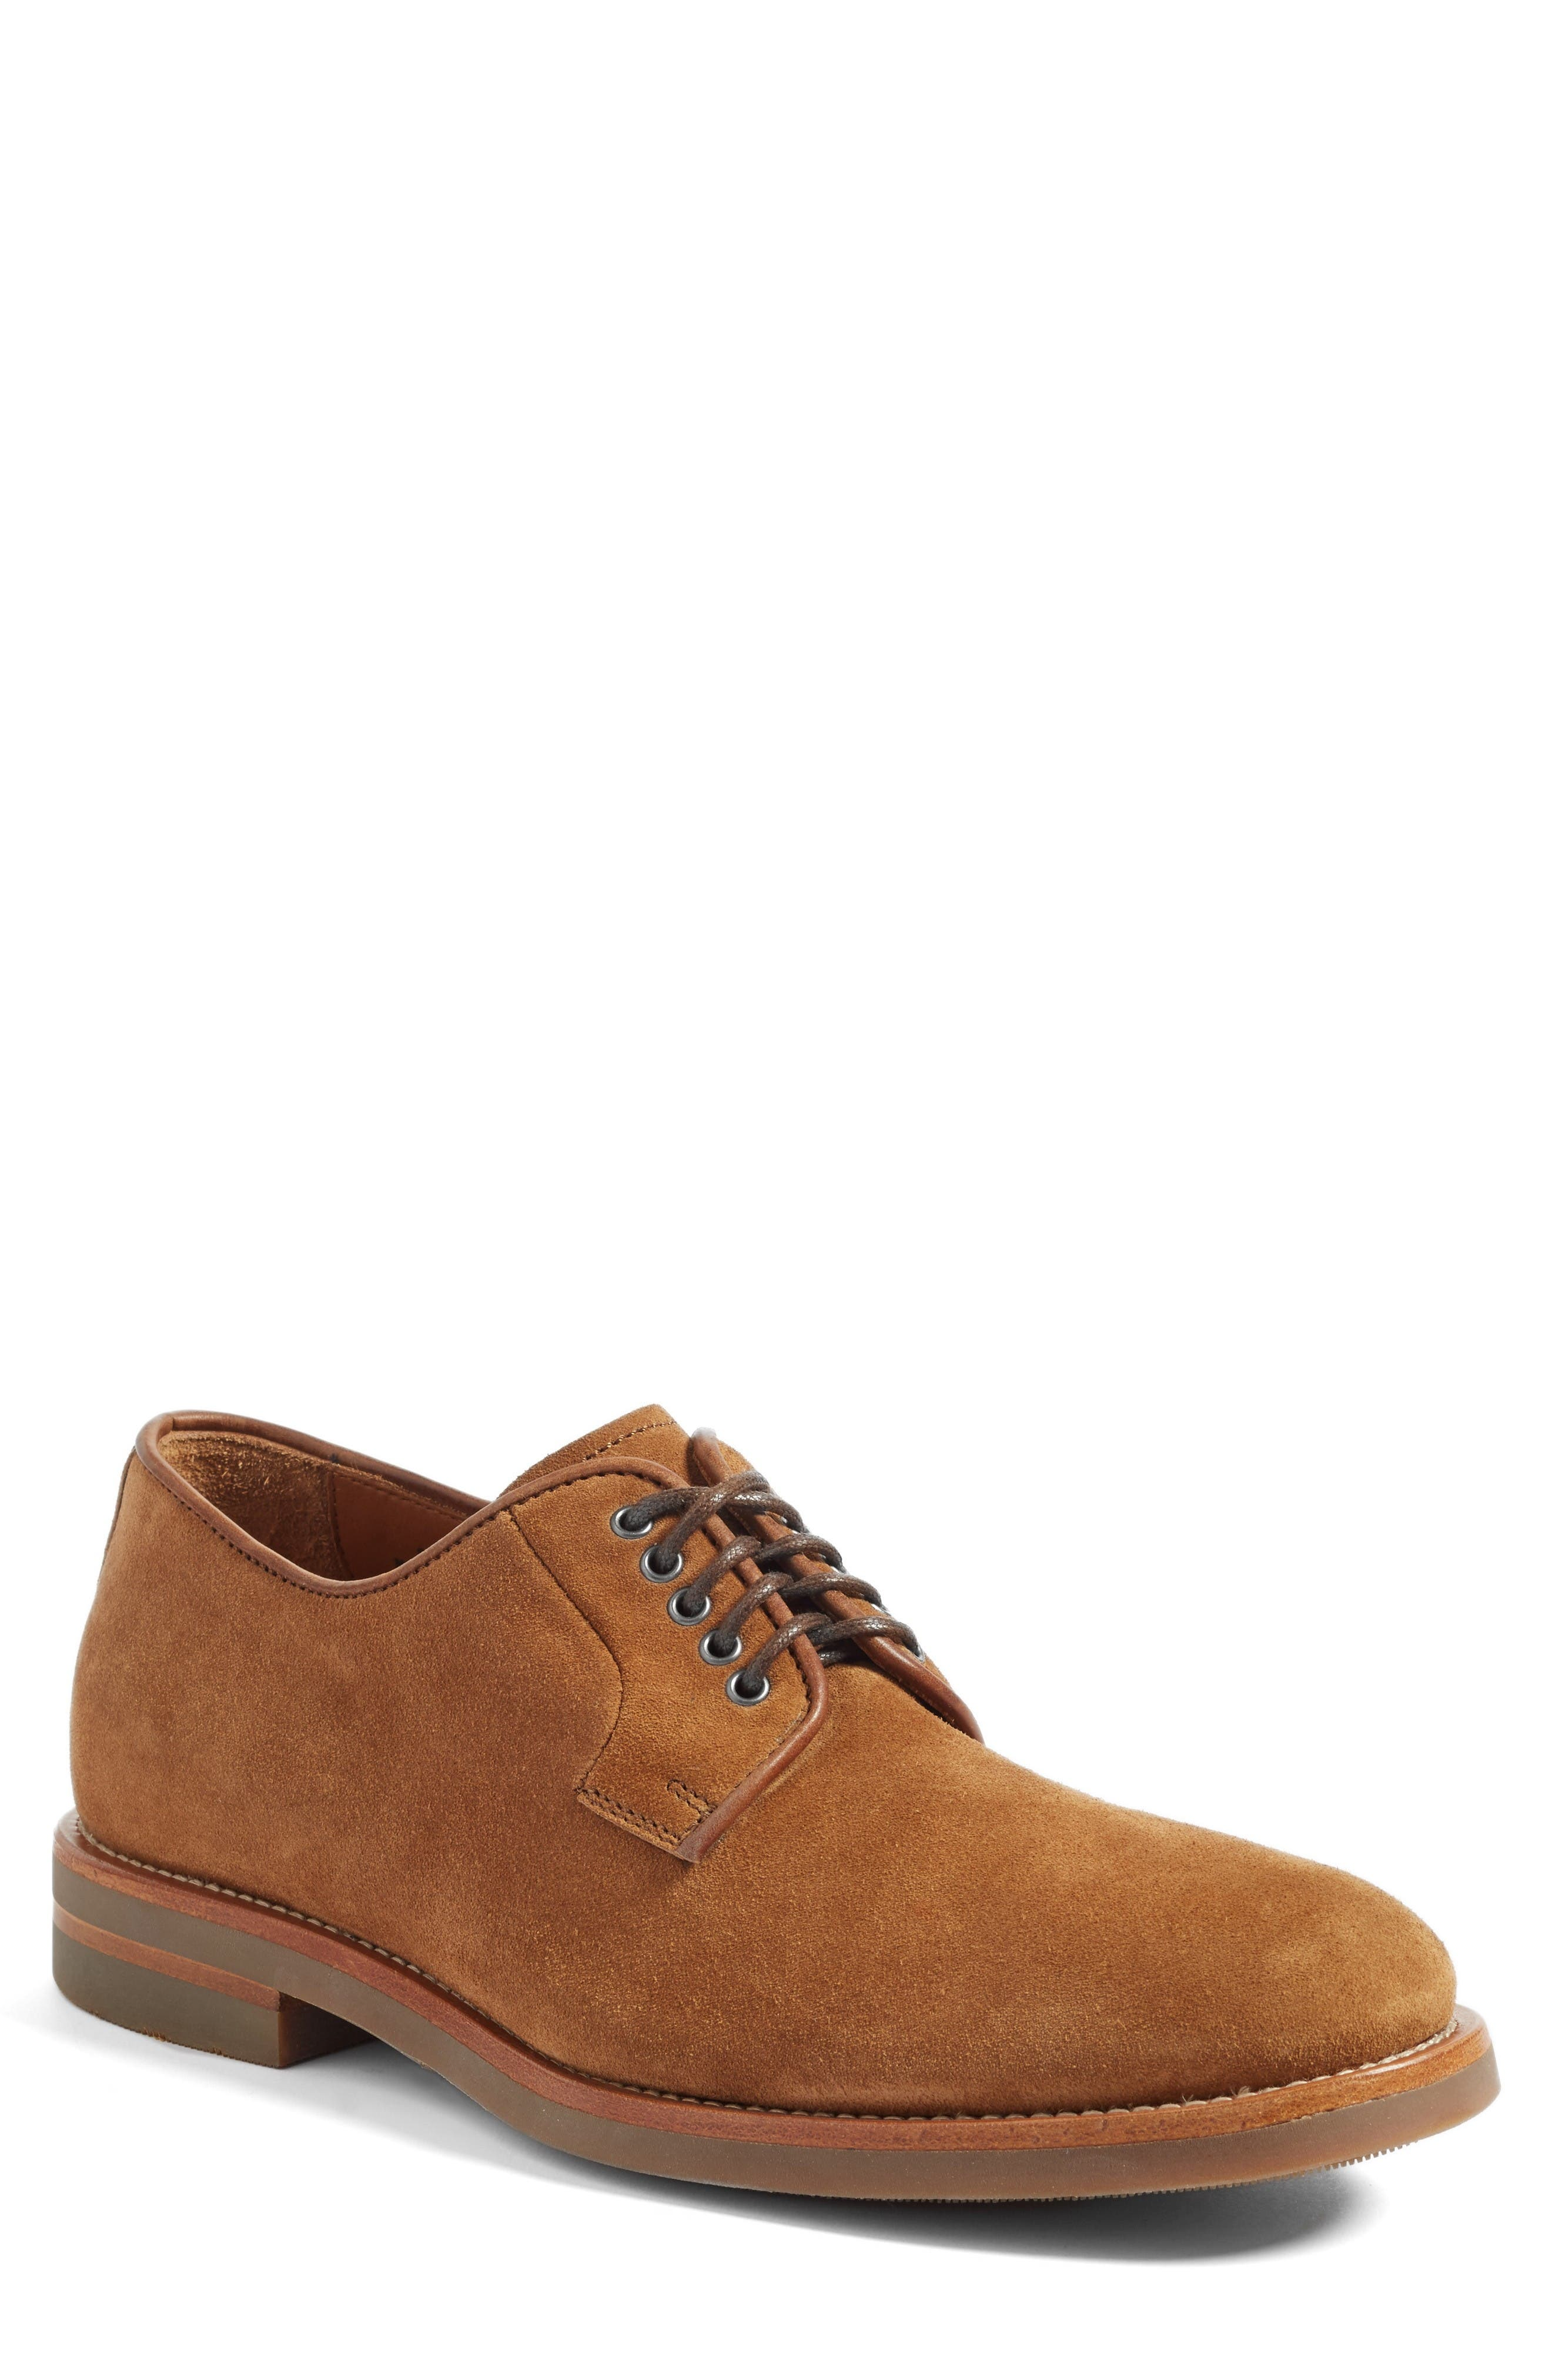 AQUATALIA Colin Buck Shoe